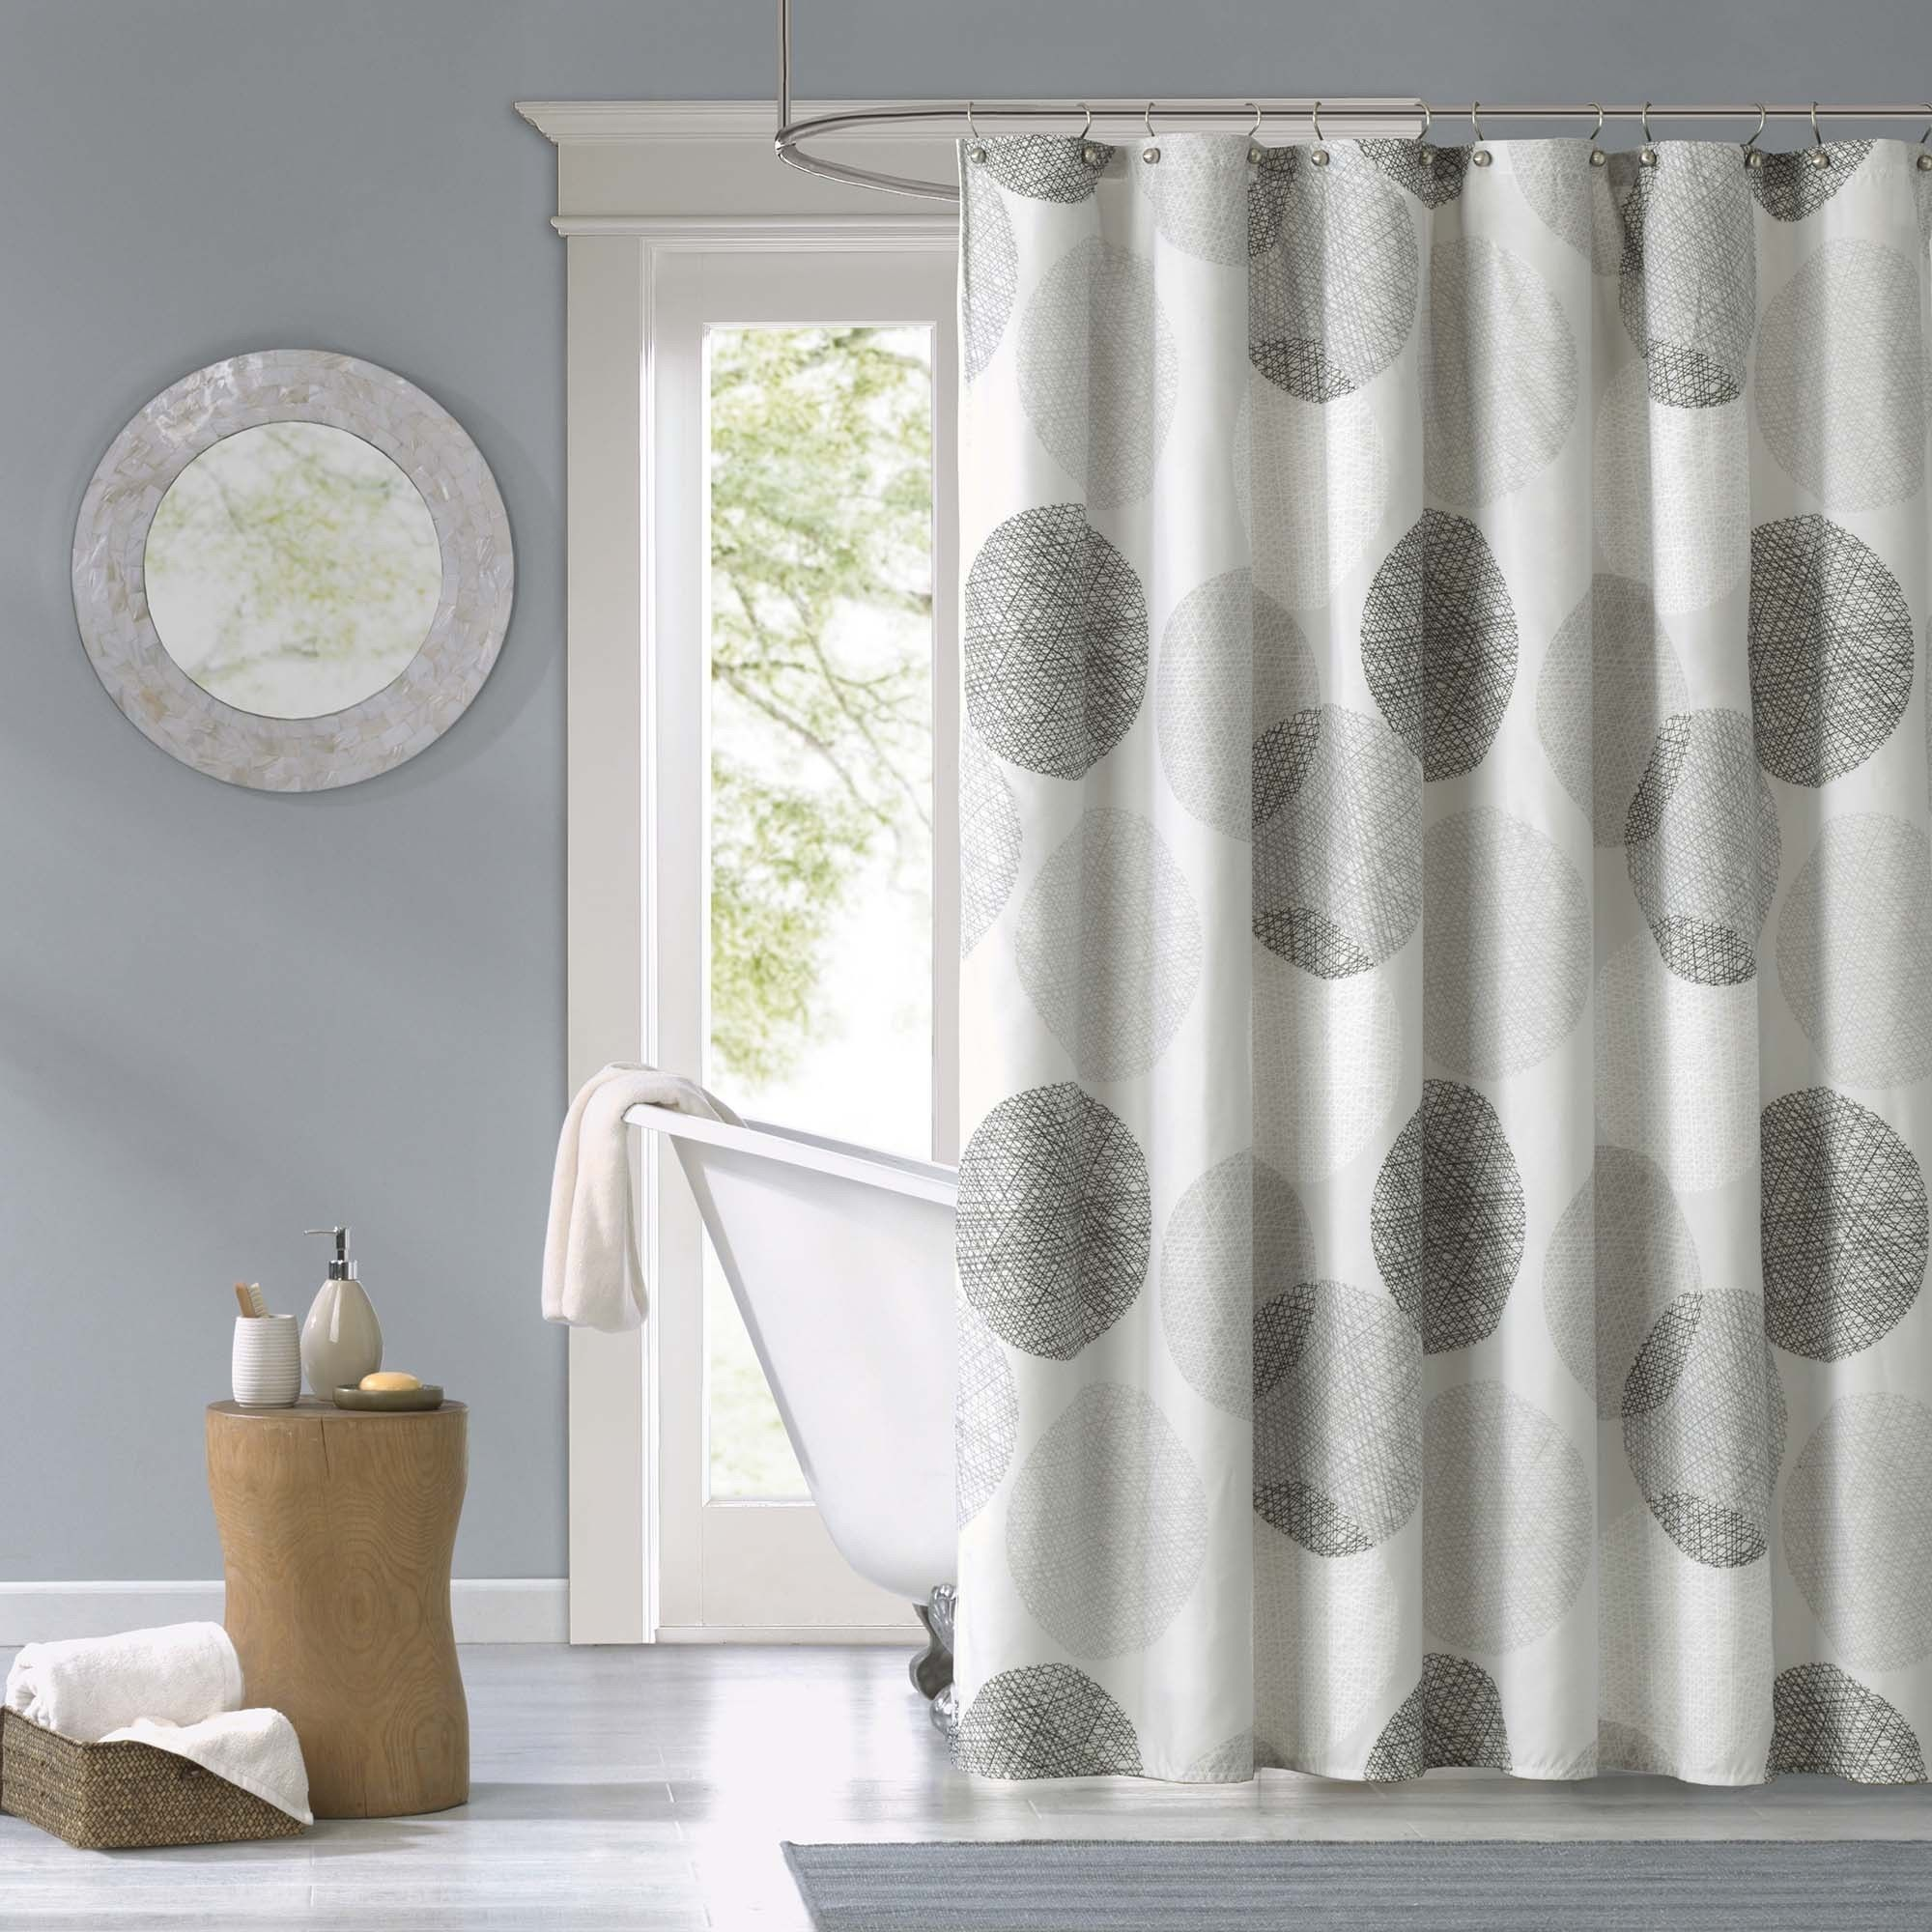 Captivating Grey And Tan Shower Curtain Ideas - Best inspiration ...